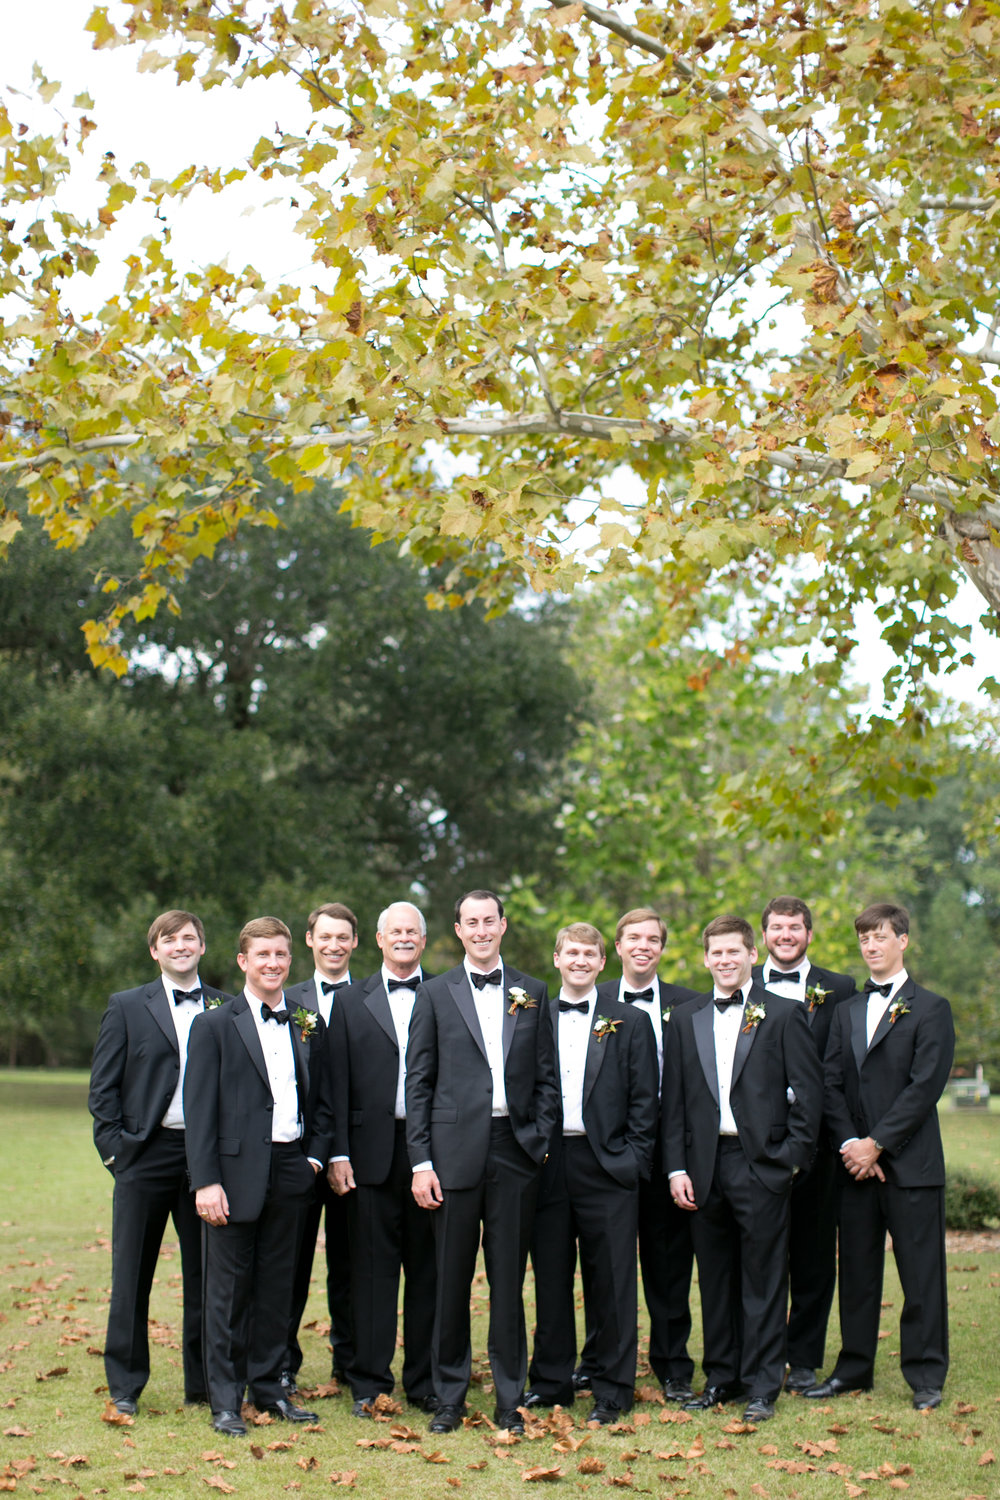 asheville_wedding_photographer65.jpg